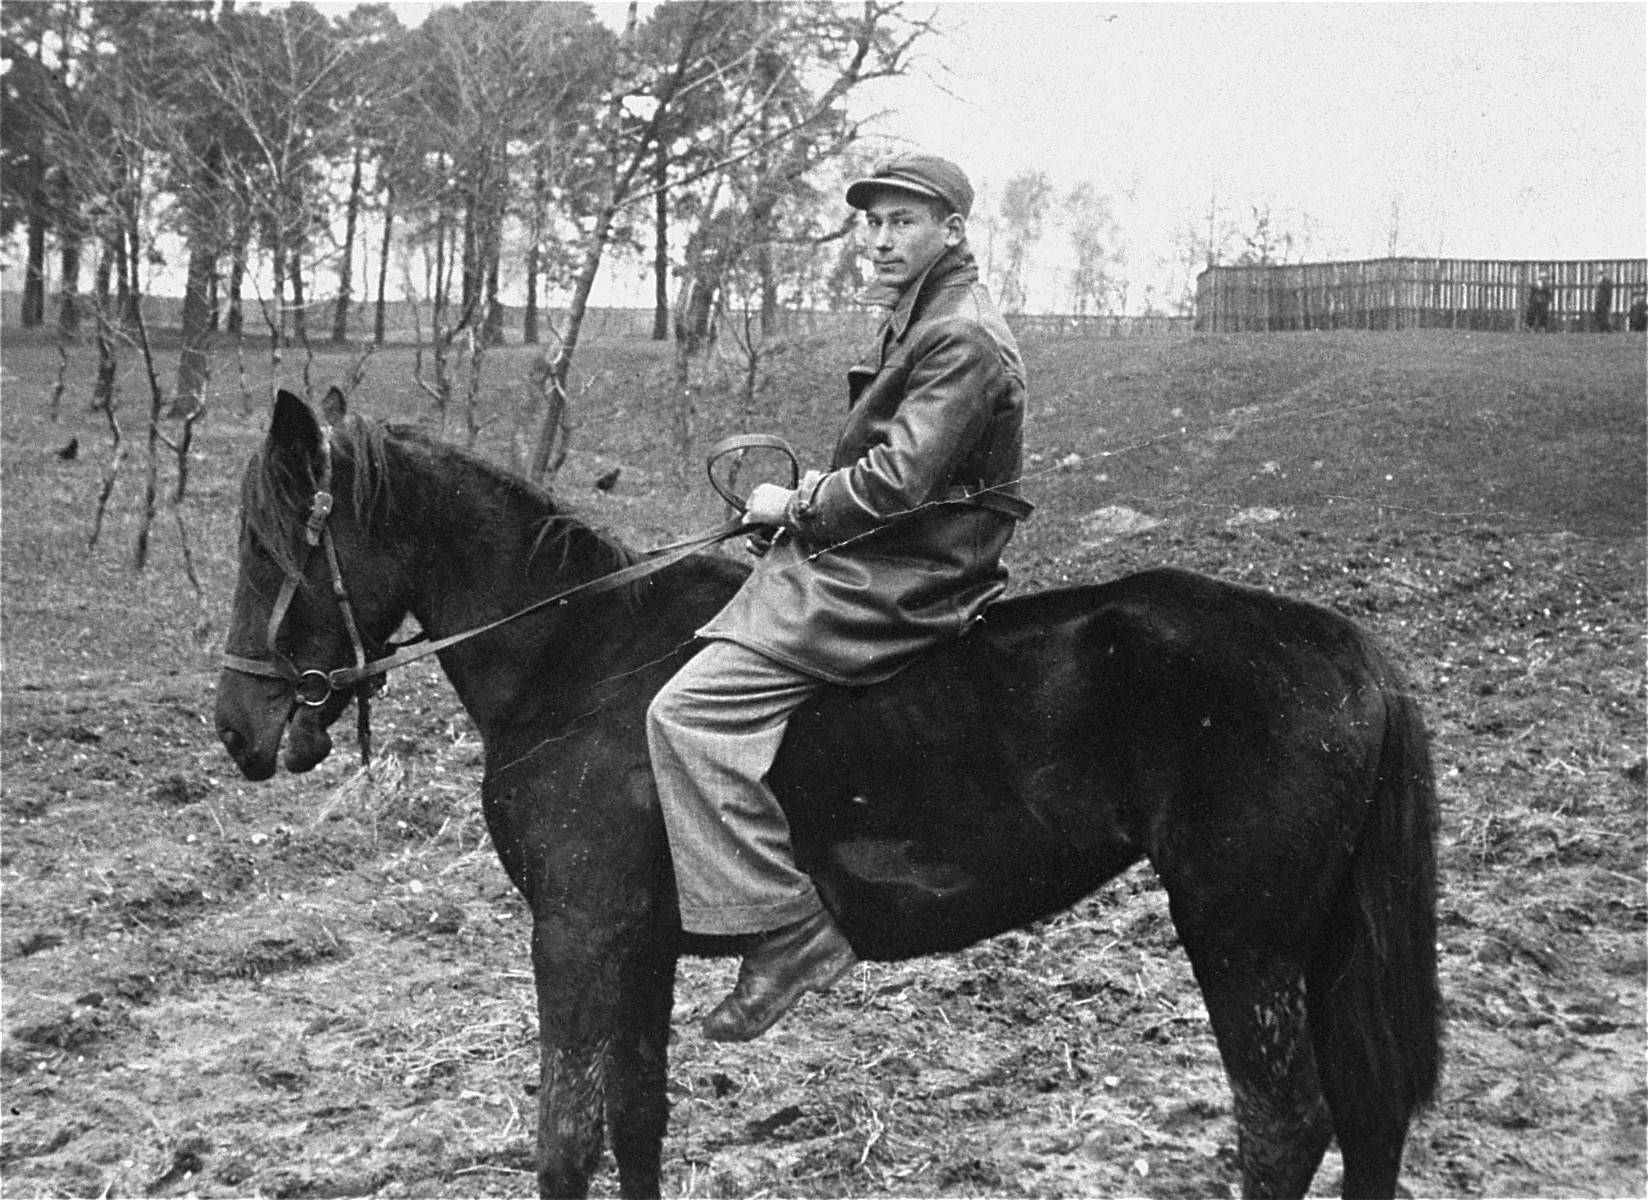 Amnon Klukowski, a member of the Hashomer Hatzair Zionist collective, rides the only horse on their farm in Zarki.